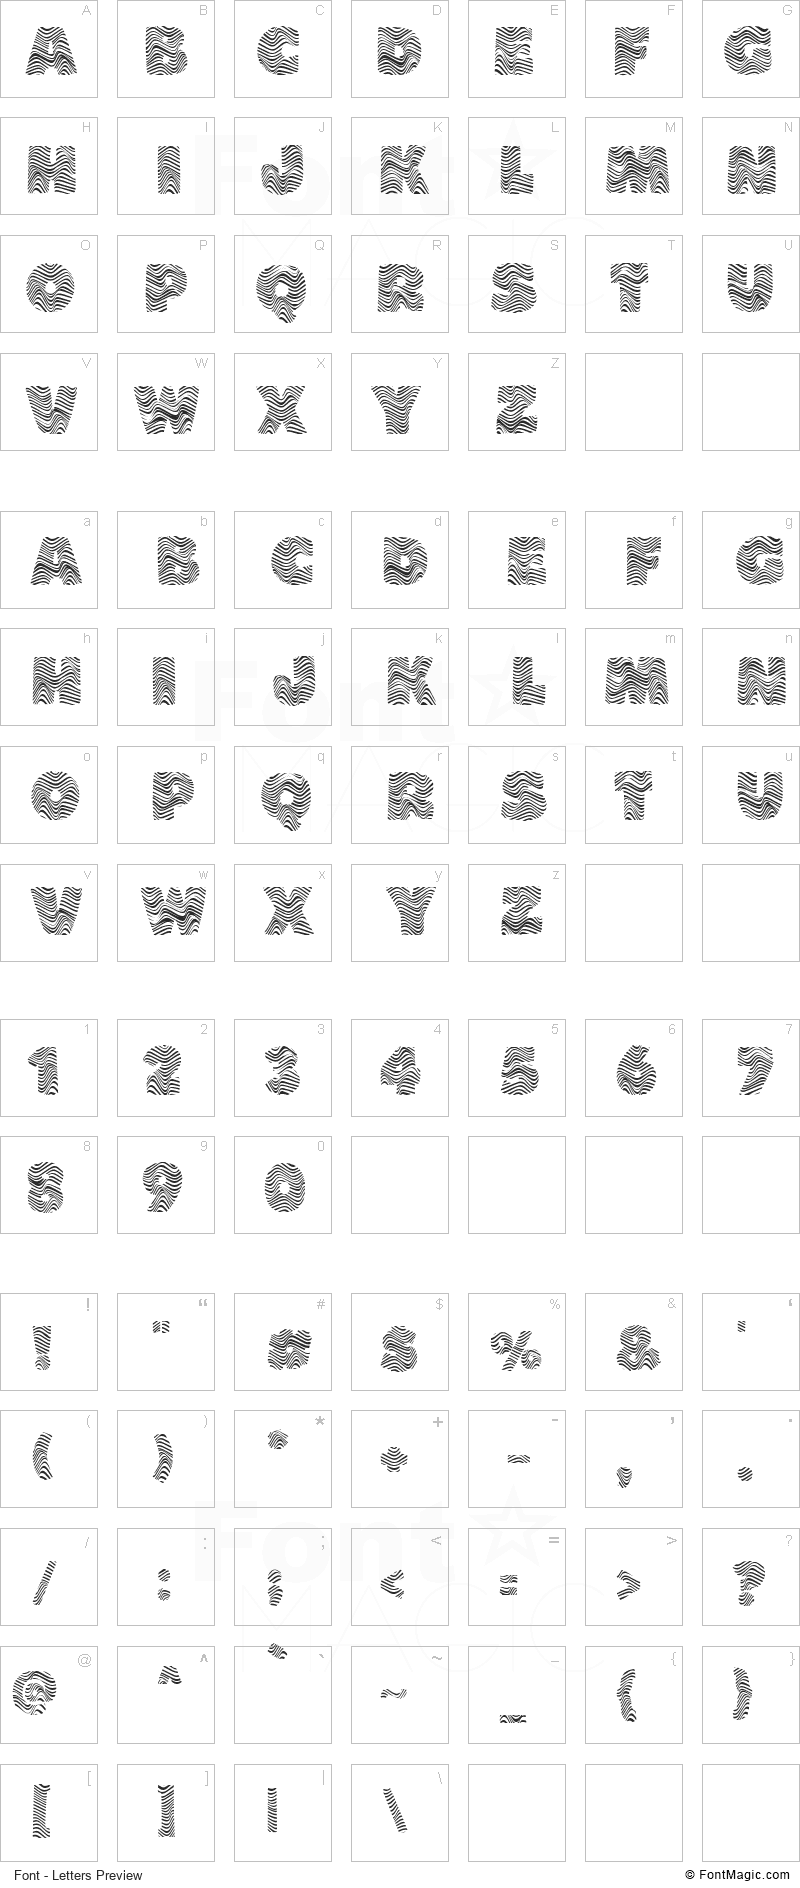 The Wave Font - All Latters Preview Chart